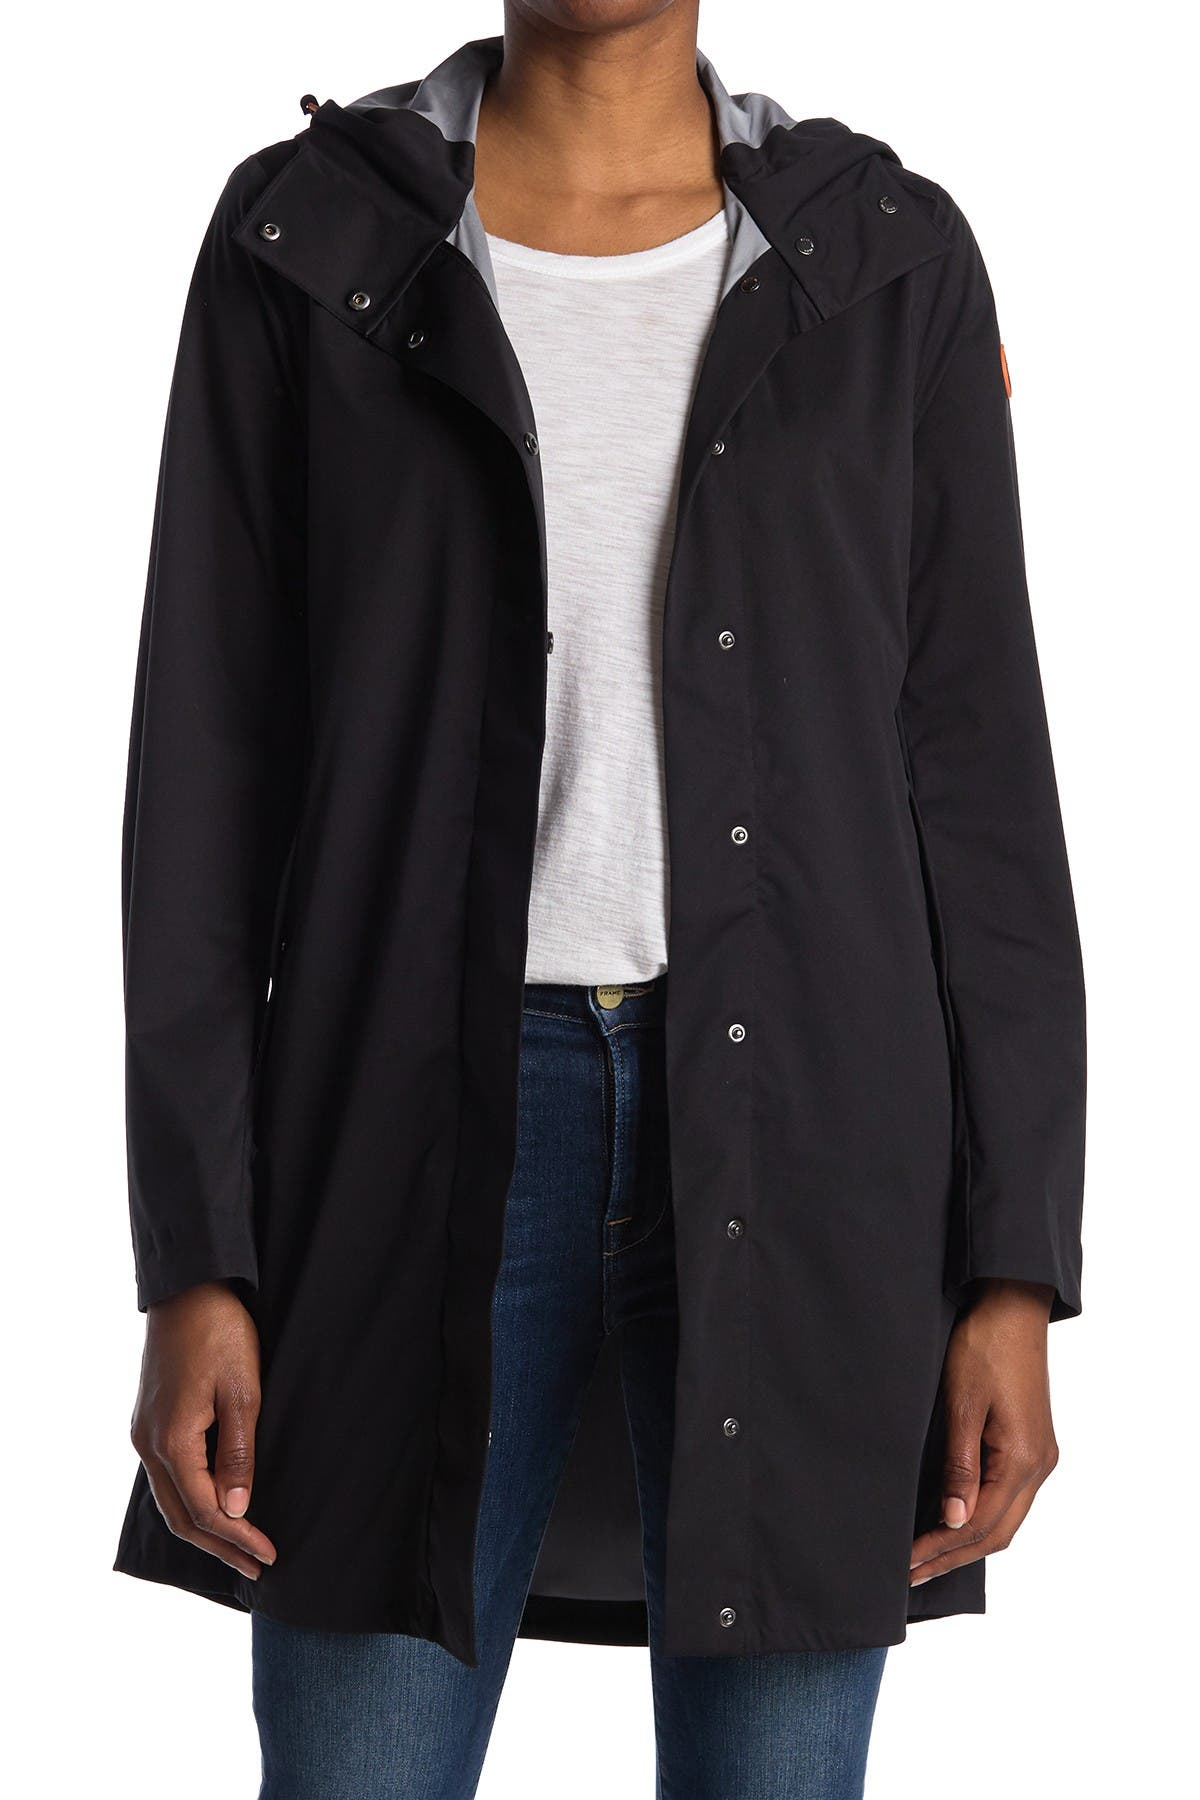 Image of Save The Duck Hooded Rain Jacket